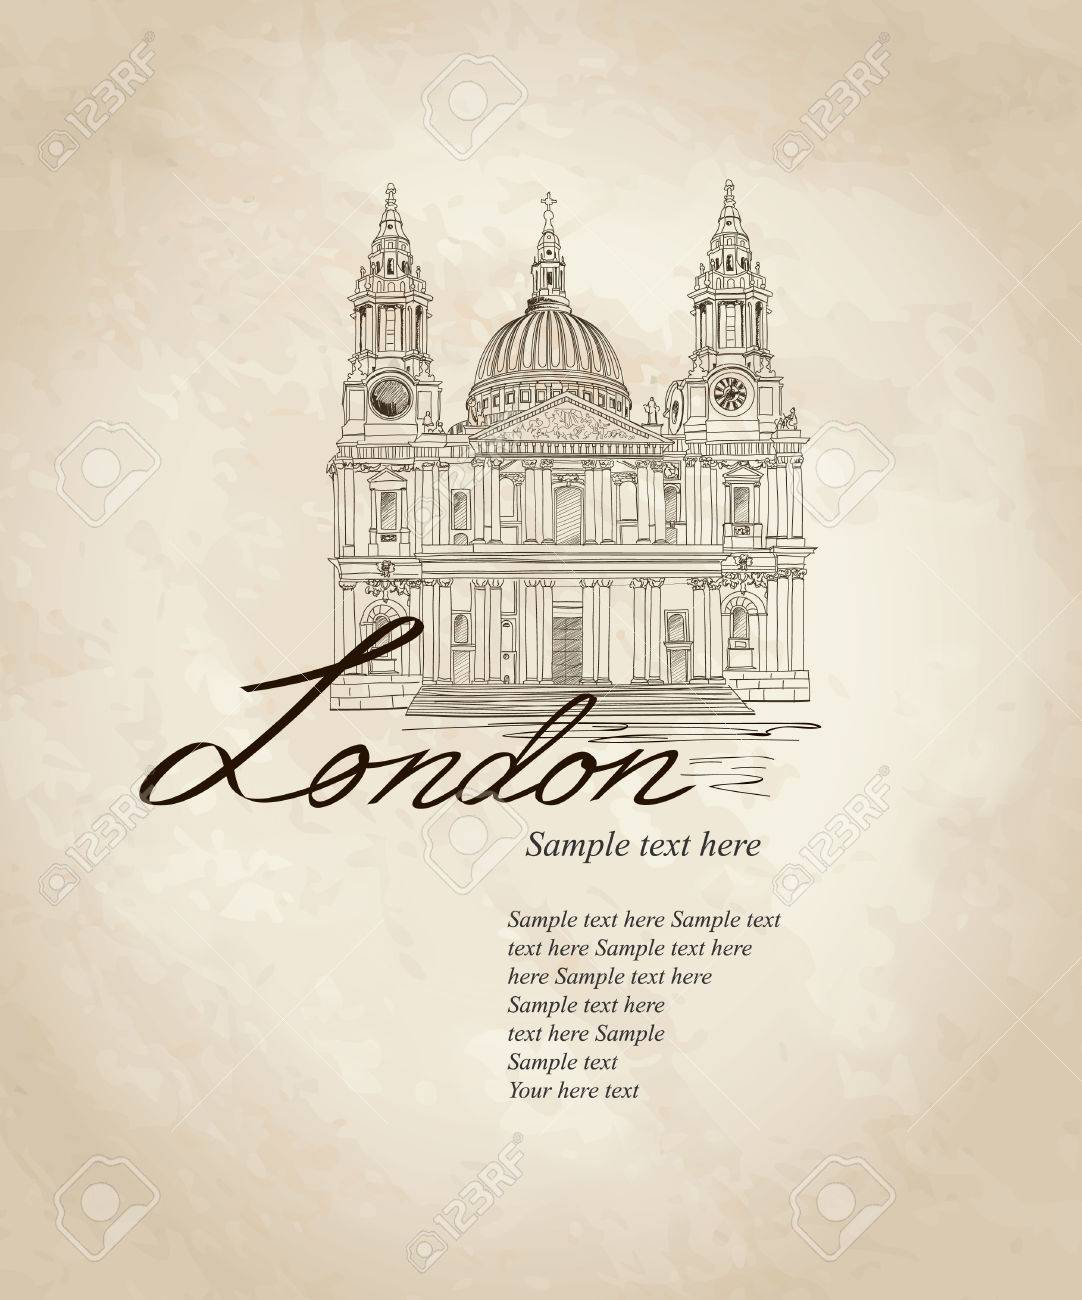 St  Paul Cathedral, London, UK  Hand Drawn Illustration  Vector vintage background Stock Vector - 22796499